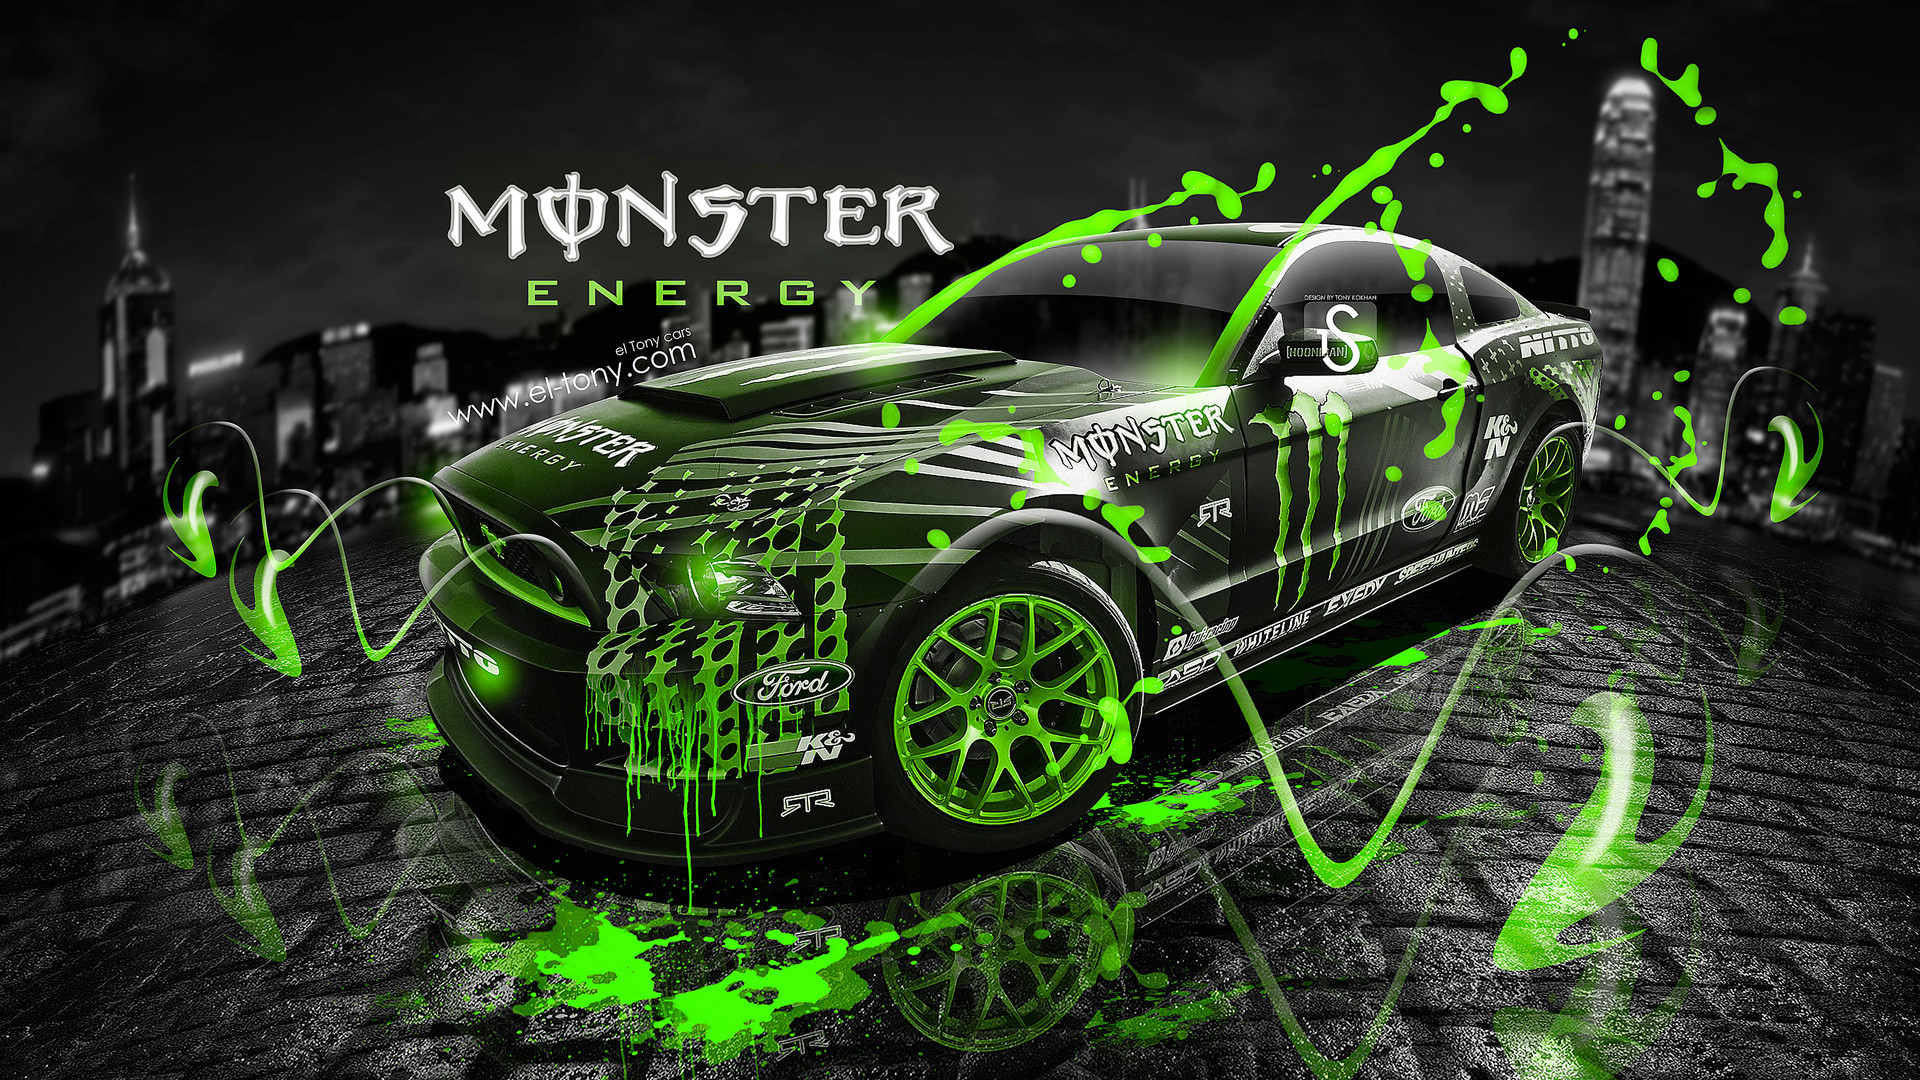 Charmant 3068x2060 Wallpapers For U003e Red Monster Energy Logo Wallpaper